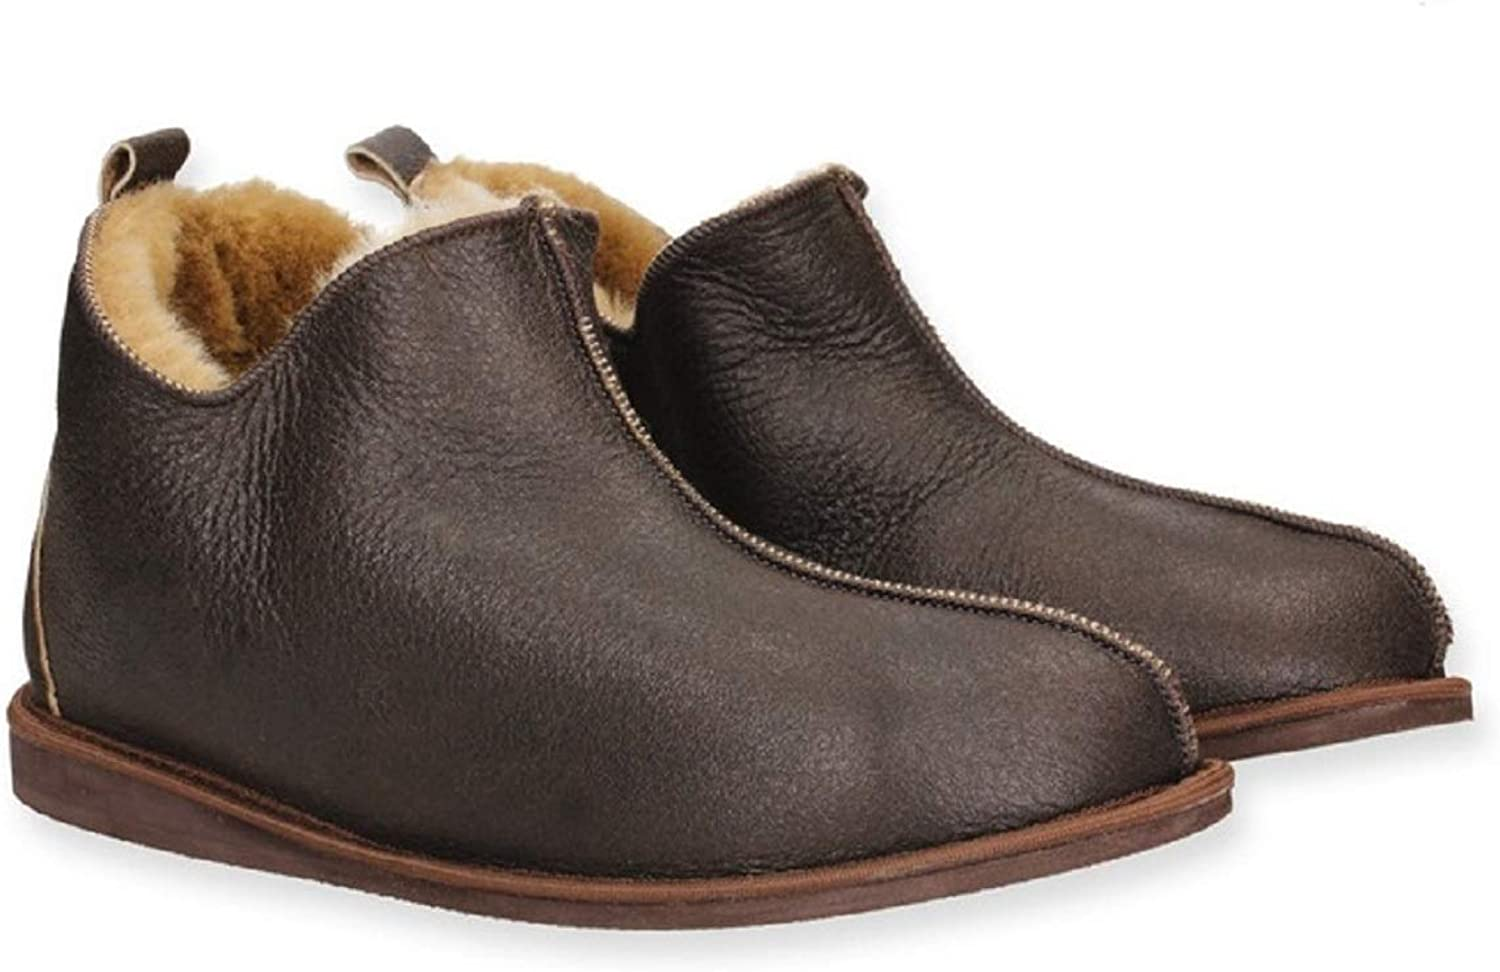 Yeti & Sons Hand Crafted Luxury Men's 100% Sheepskin Lined Ankle Hardsole Boot Slippers